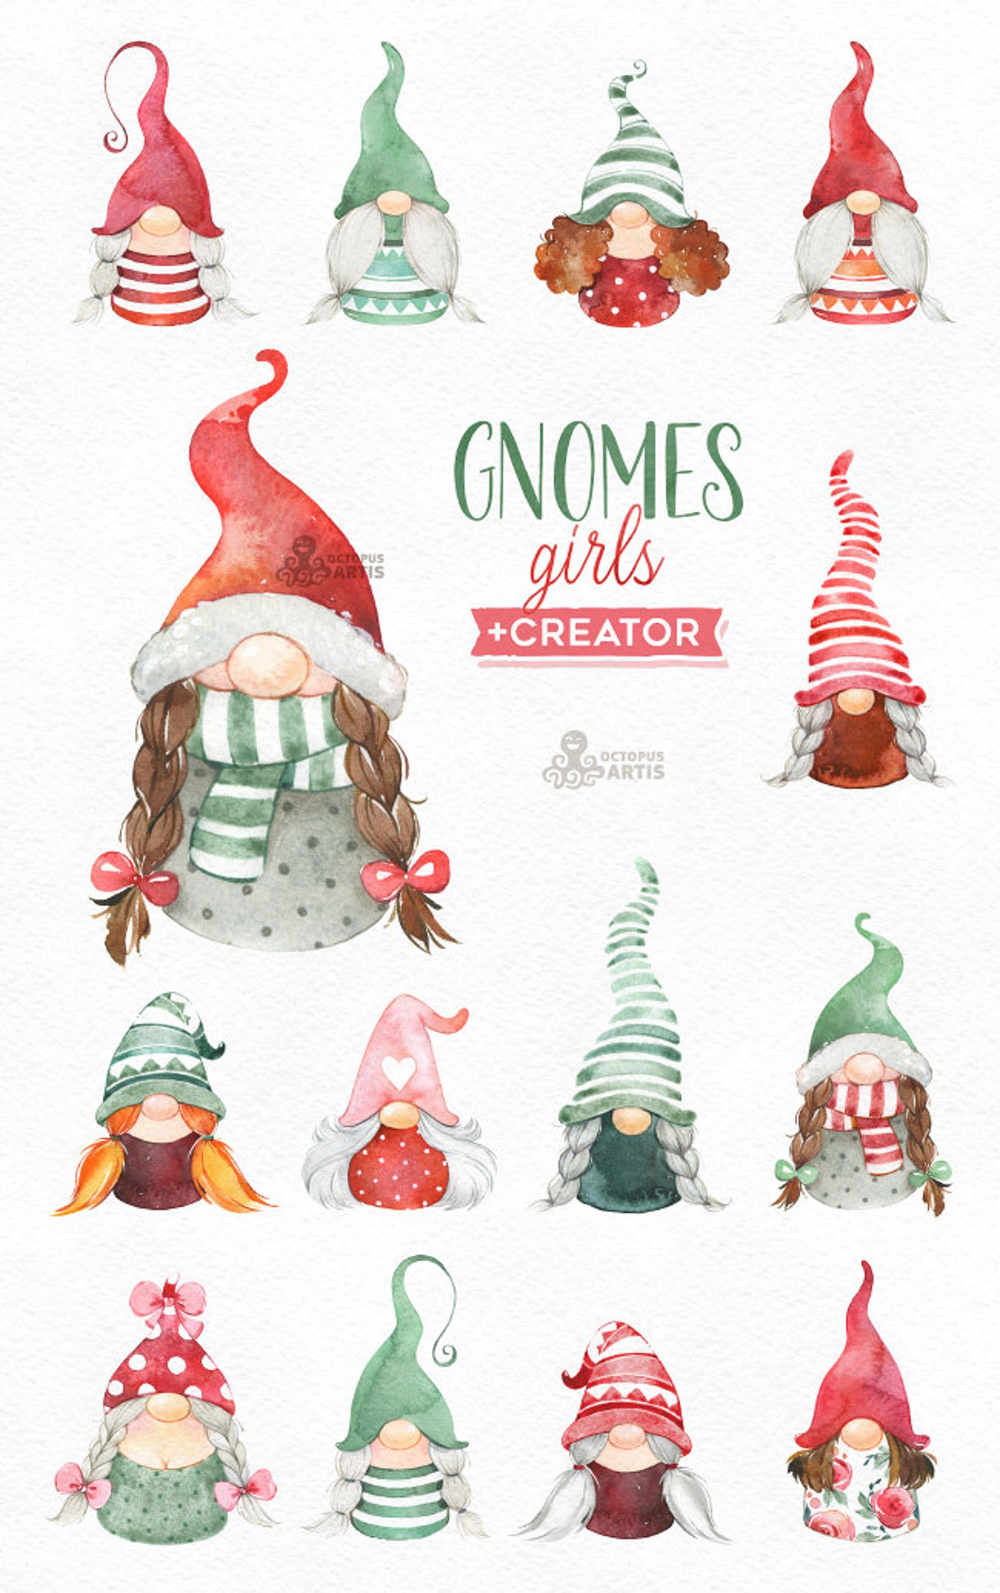 Gnomes Girls Creator Watercolor Holiday Clipart Nordic Christmas Winter Cards Nursery Art Scandinavian Gnomies Fun Customize Holiday Clipart Gnomes Crafts Christmas Art